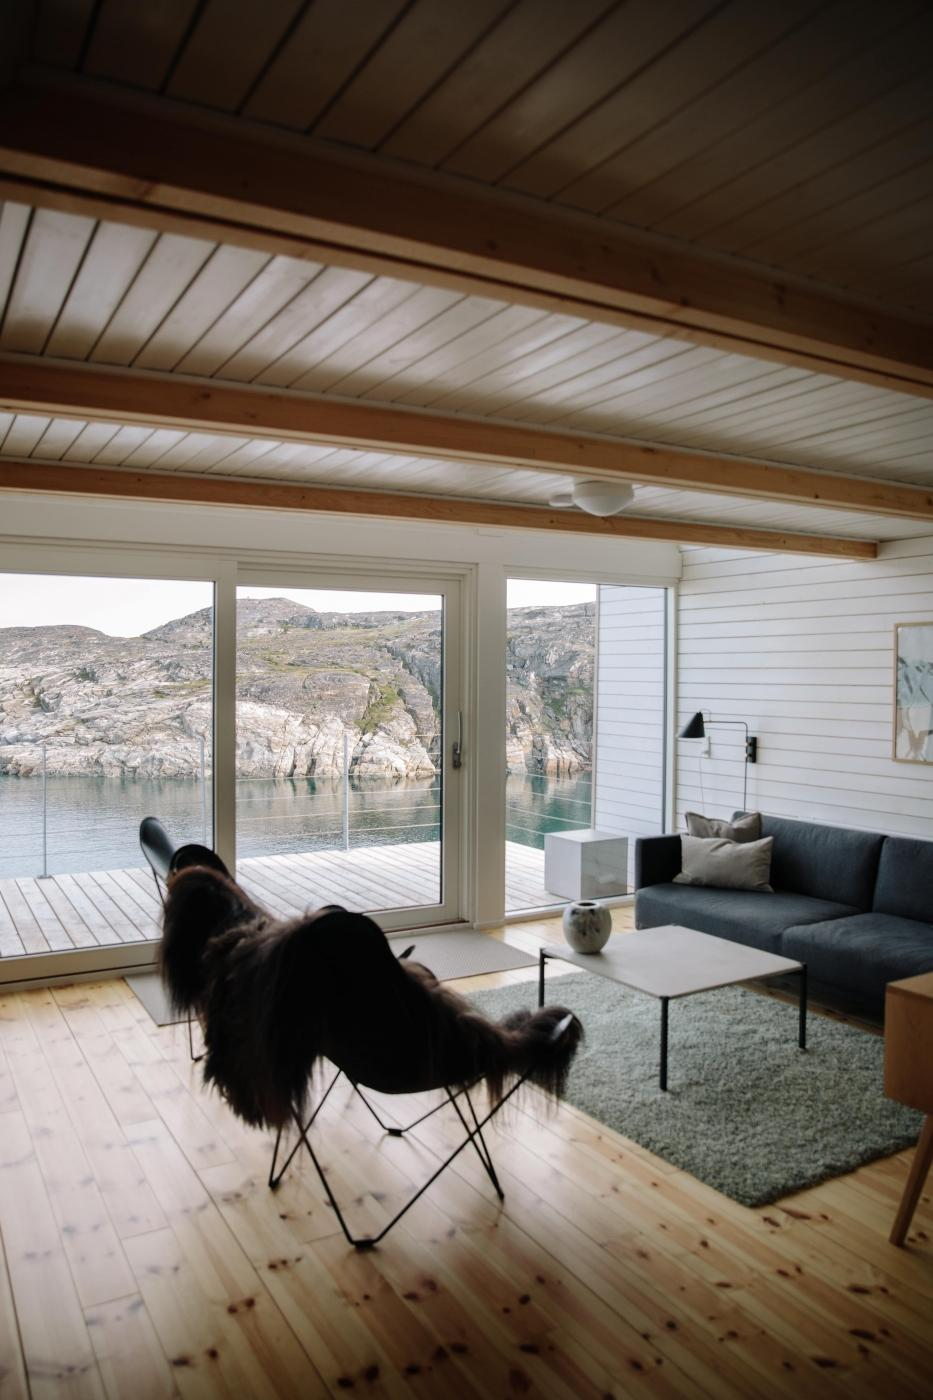 The living room of the hut at Ilimanaq Lodge with ocean views. Photo by Jessie Brinkman Evans